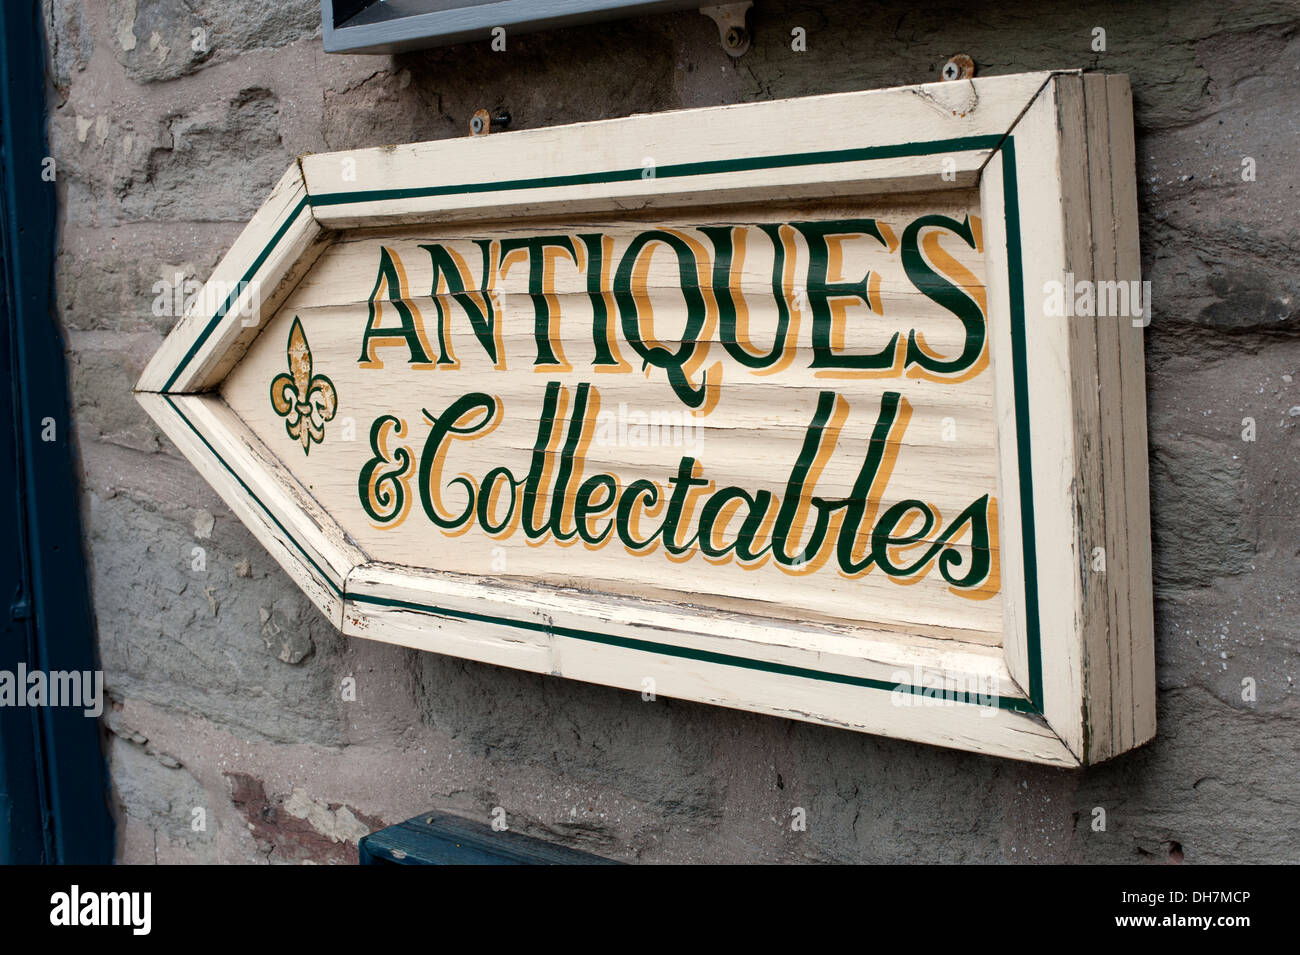 Antiques & And Collectables Sign - Stock Image